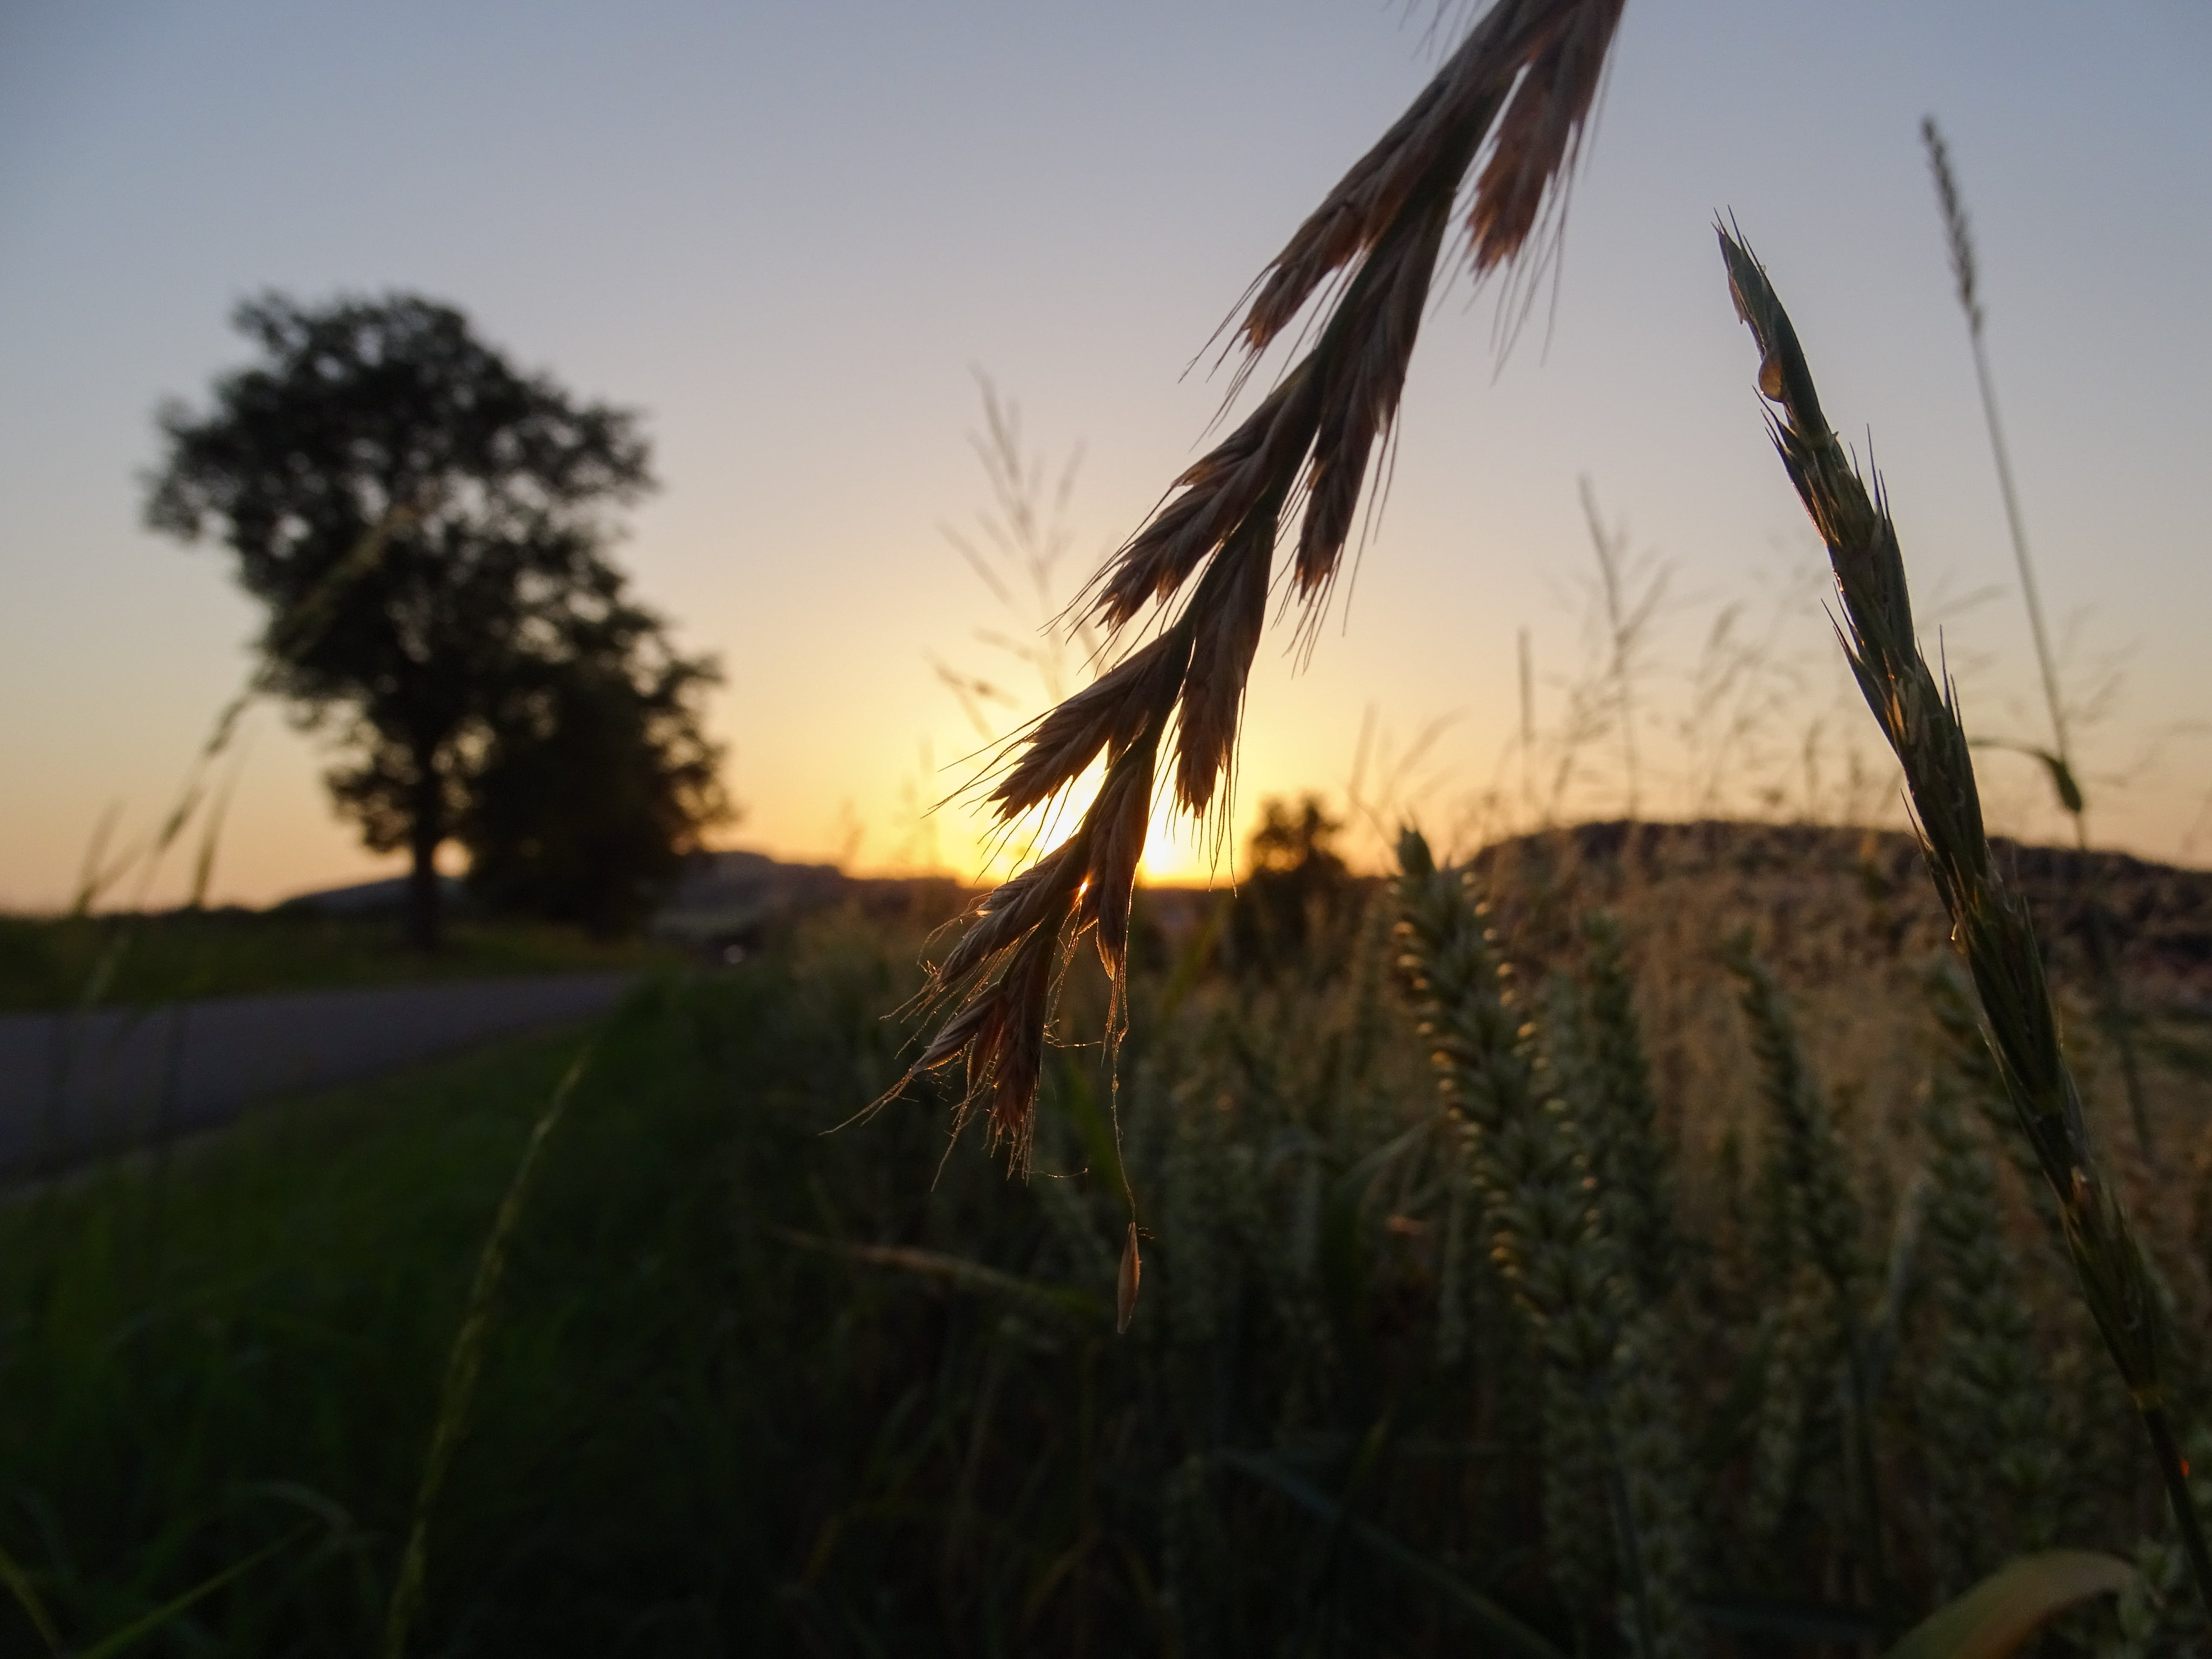 Selective Focus Photo of Wheat Plant